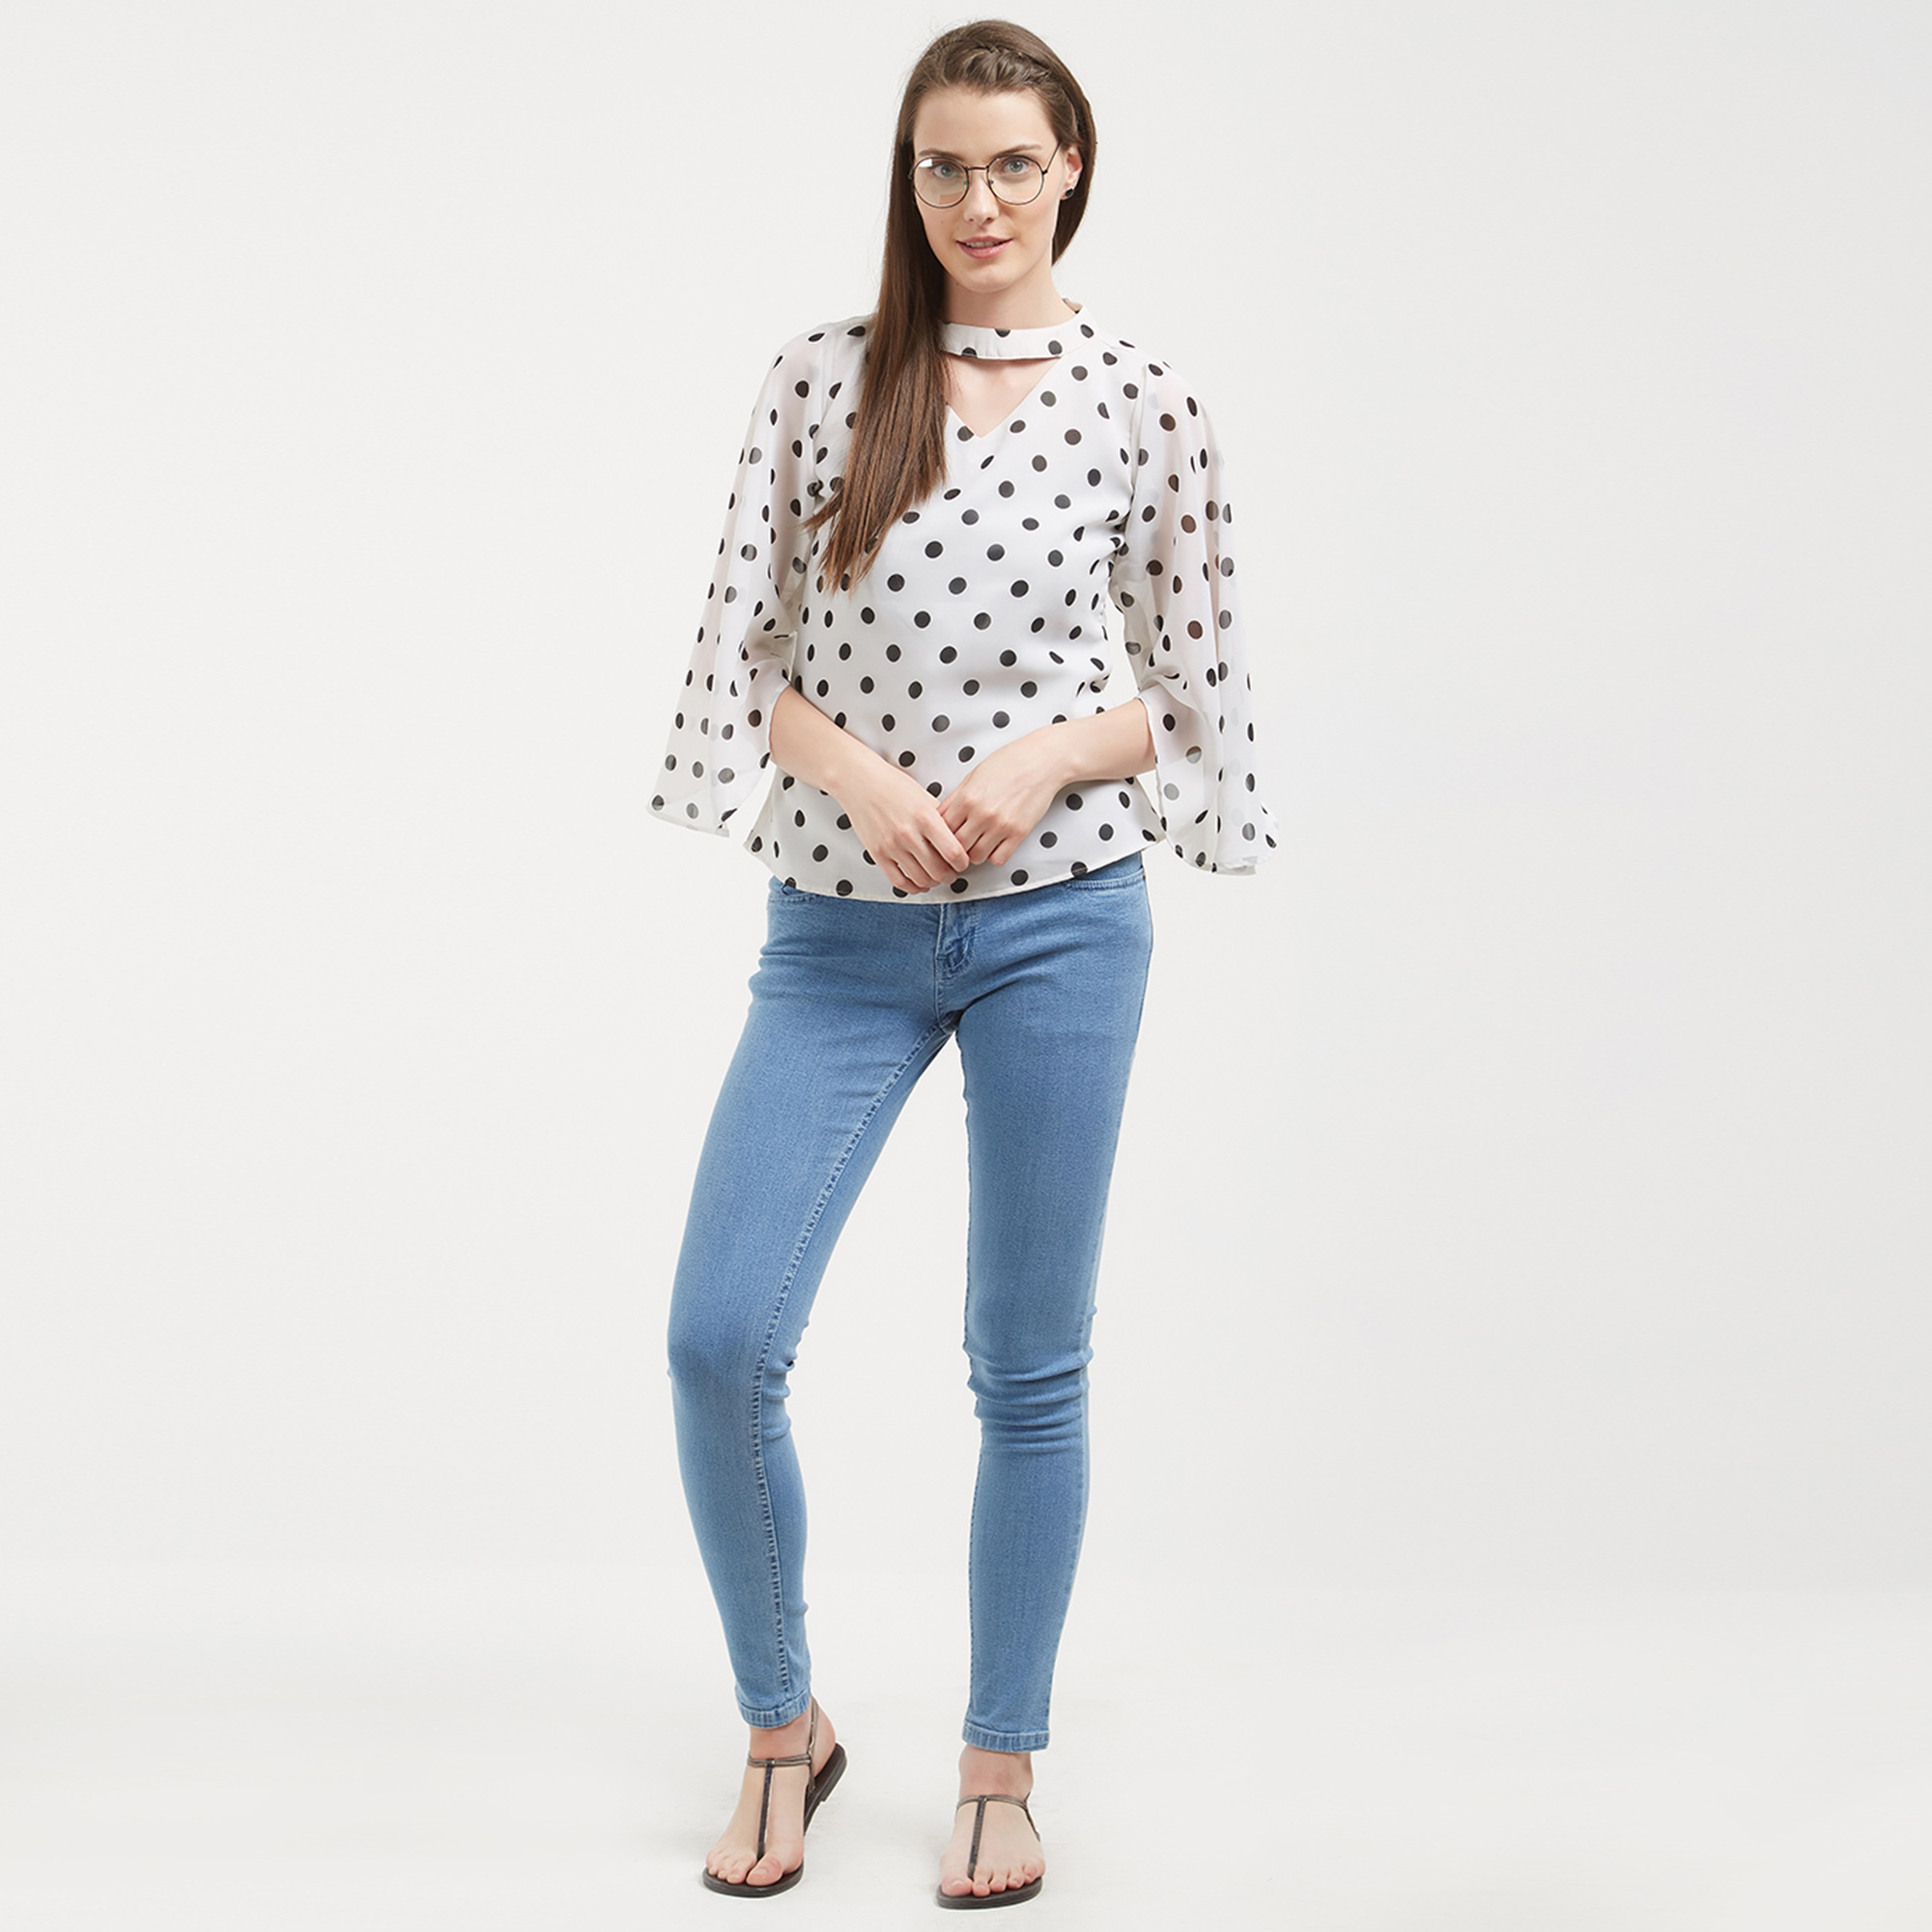 Adorning White Colored Casual Wear Western Top